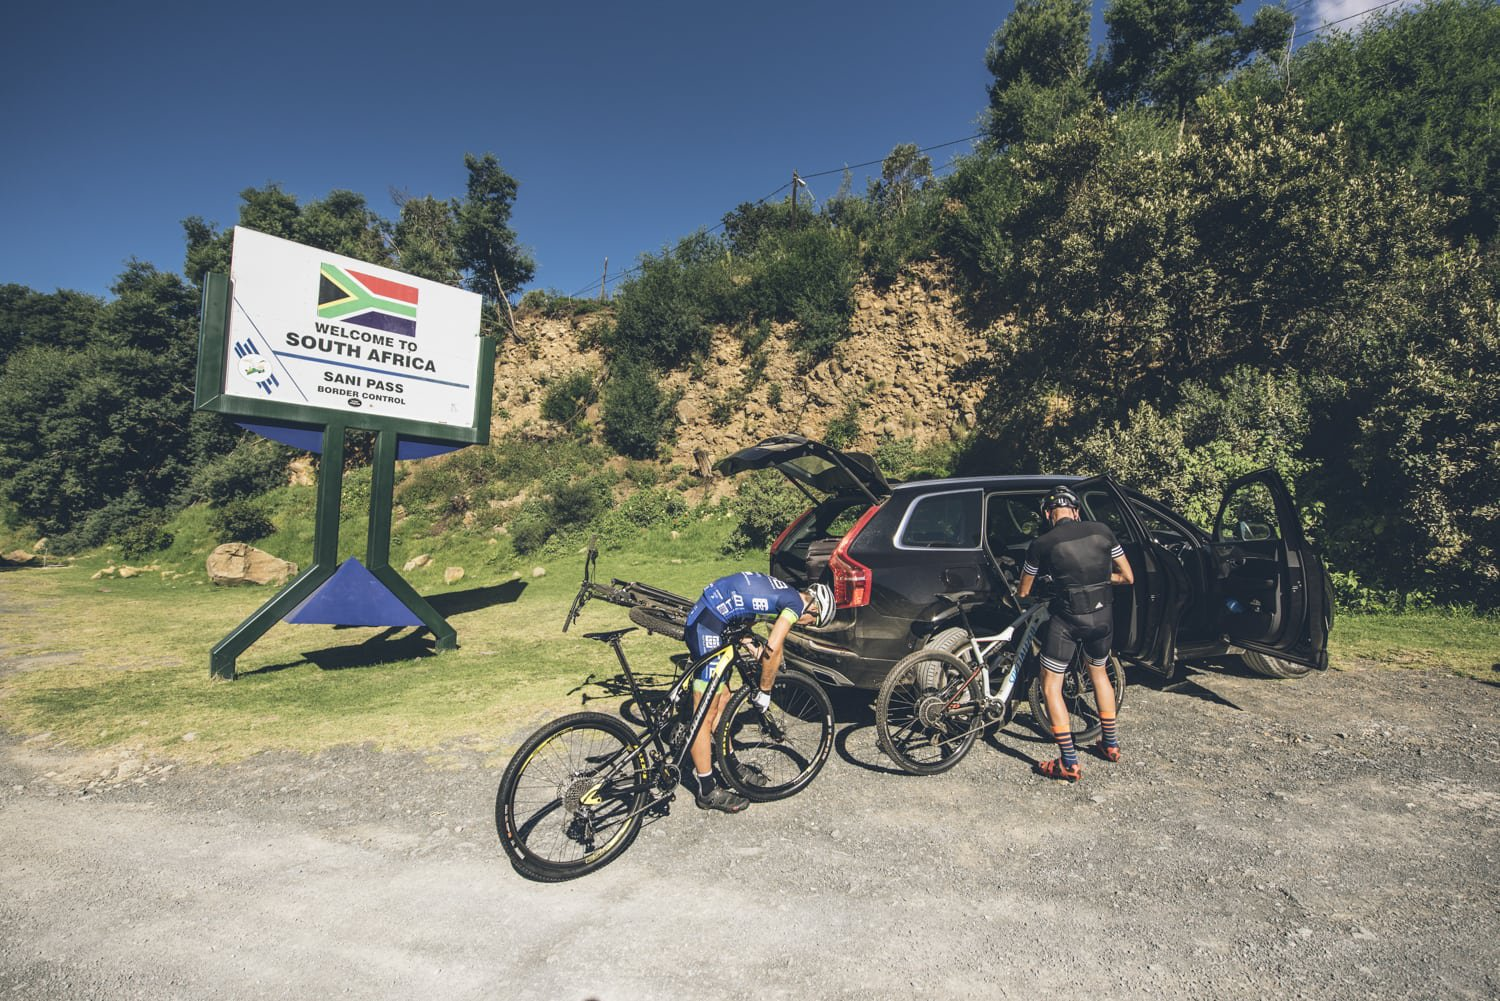 sani-pass-desmond-louw-bicycling-magazine-wowrides-0033